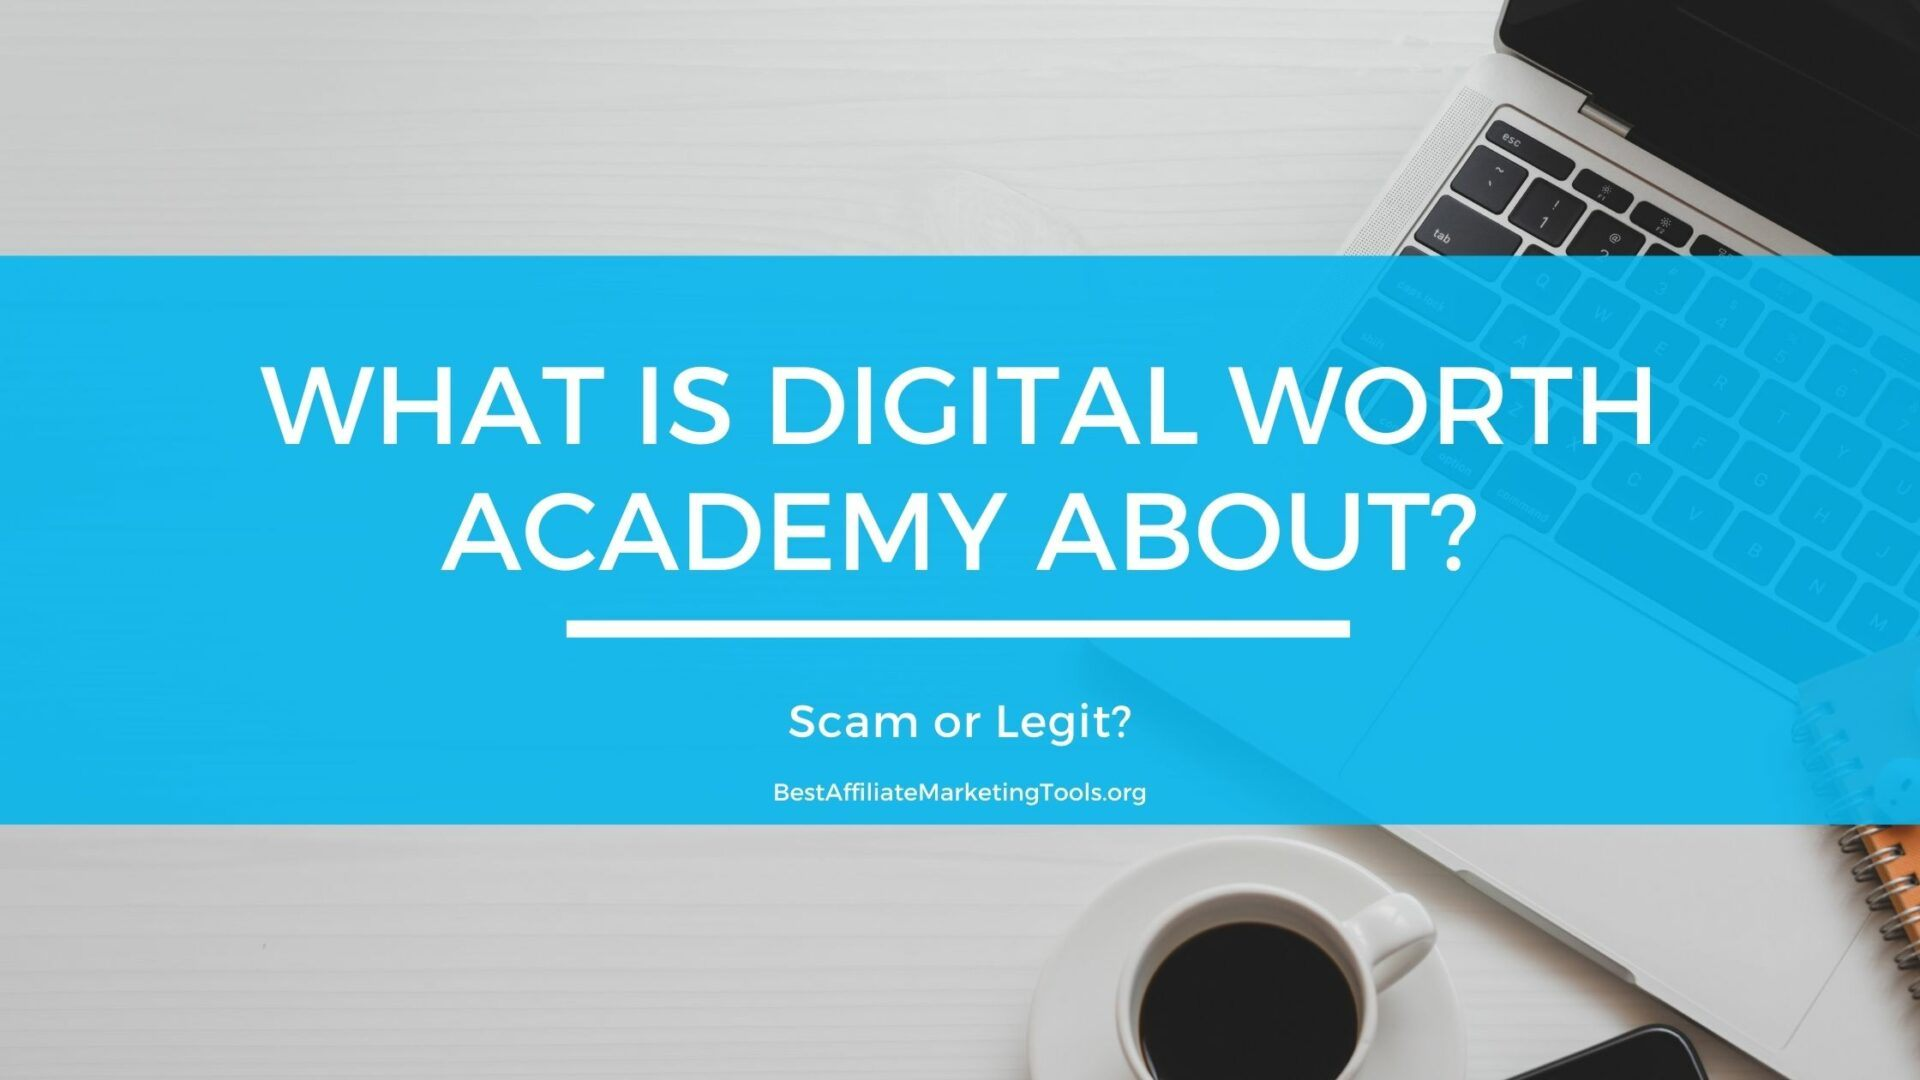 What is Digital Worth Academy About